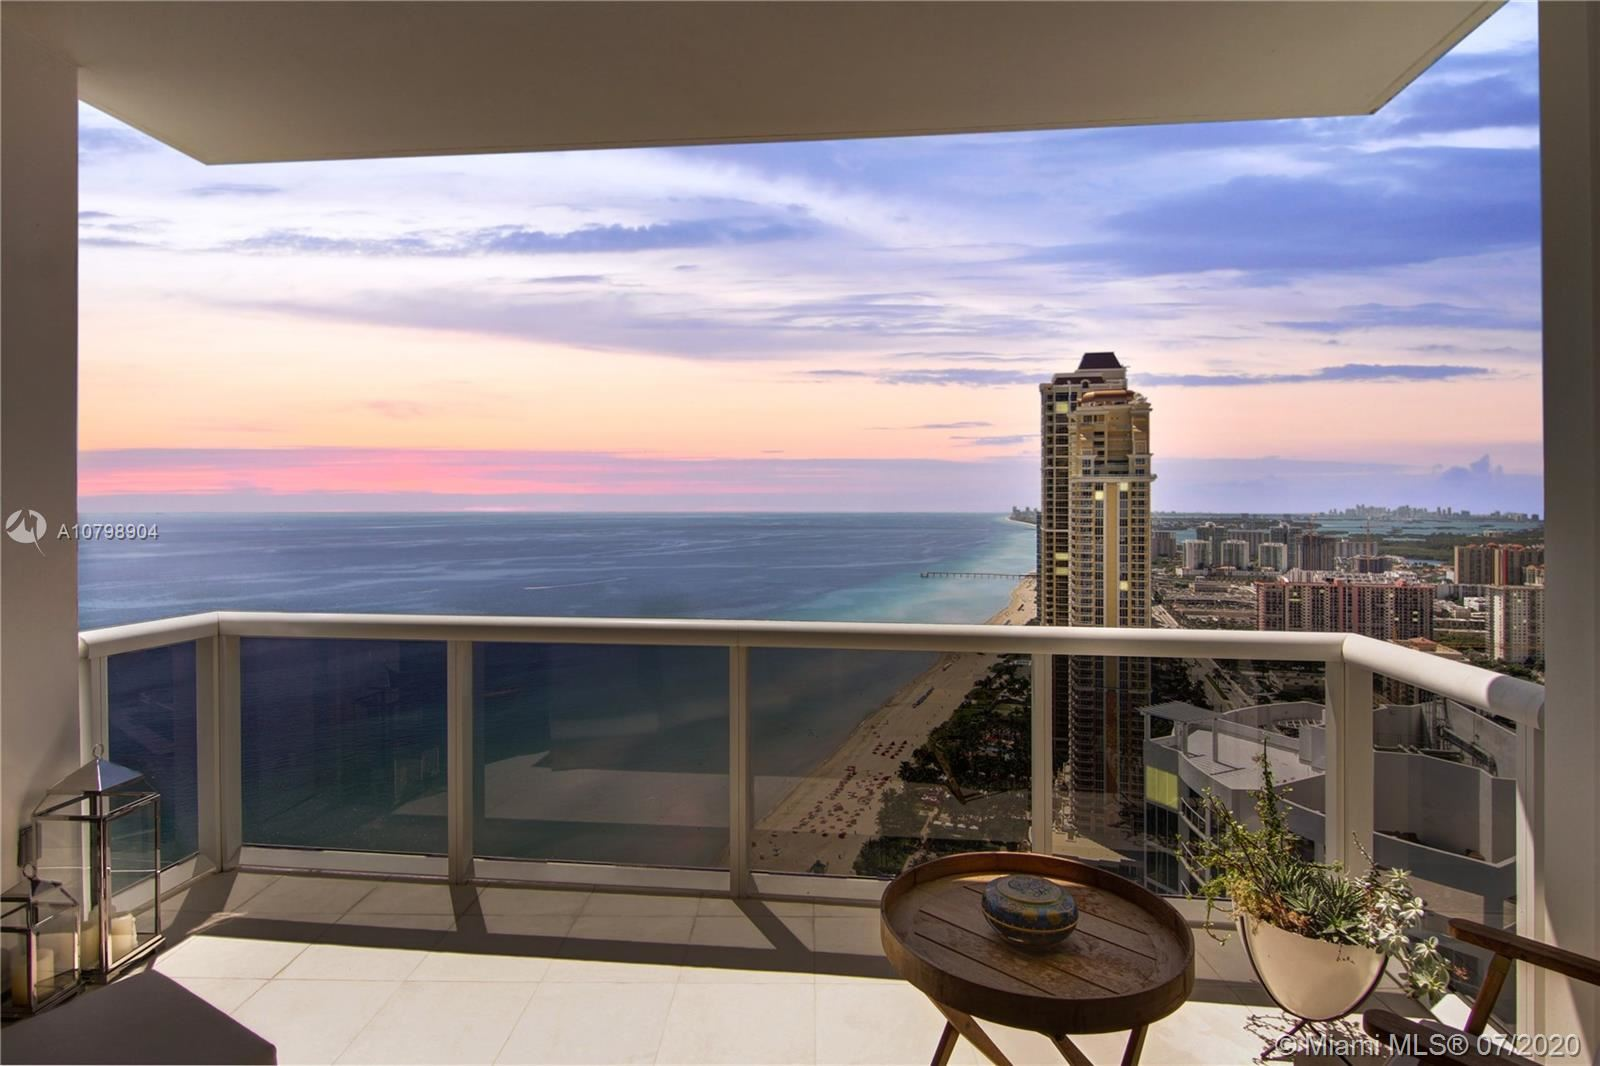 18101 Collins Ave #5002, Sunny Isles, FL 33160 - #: A10798904